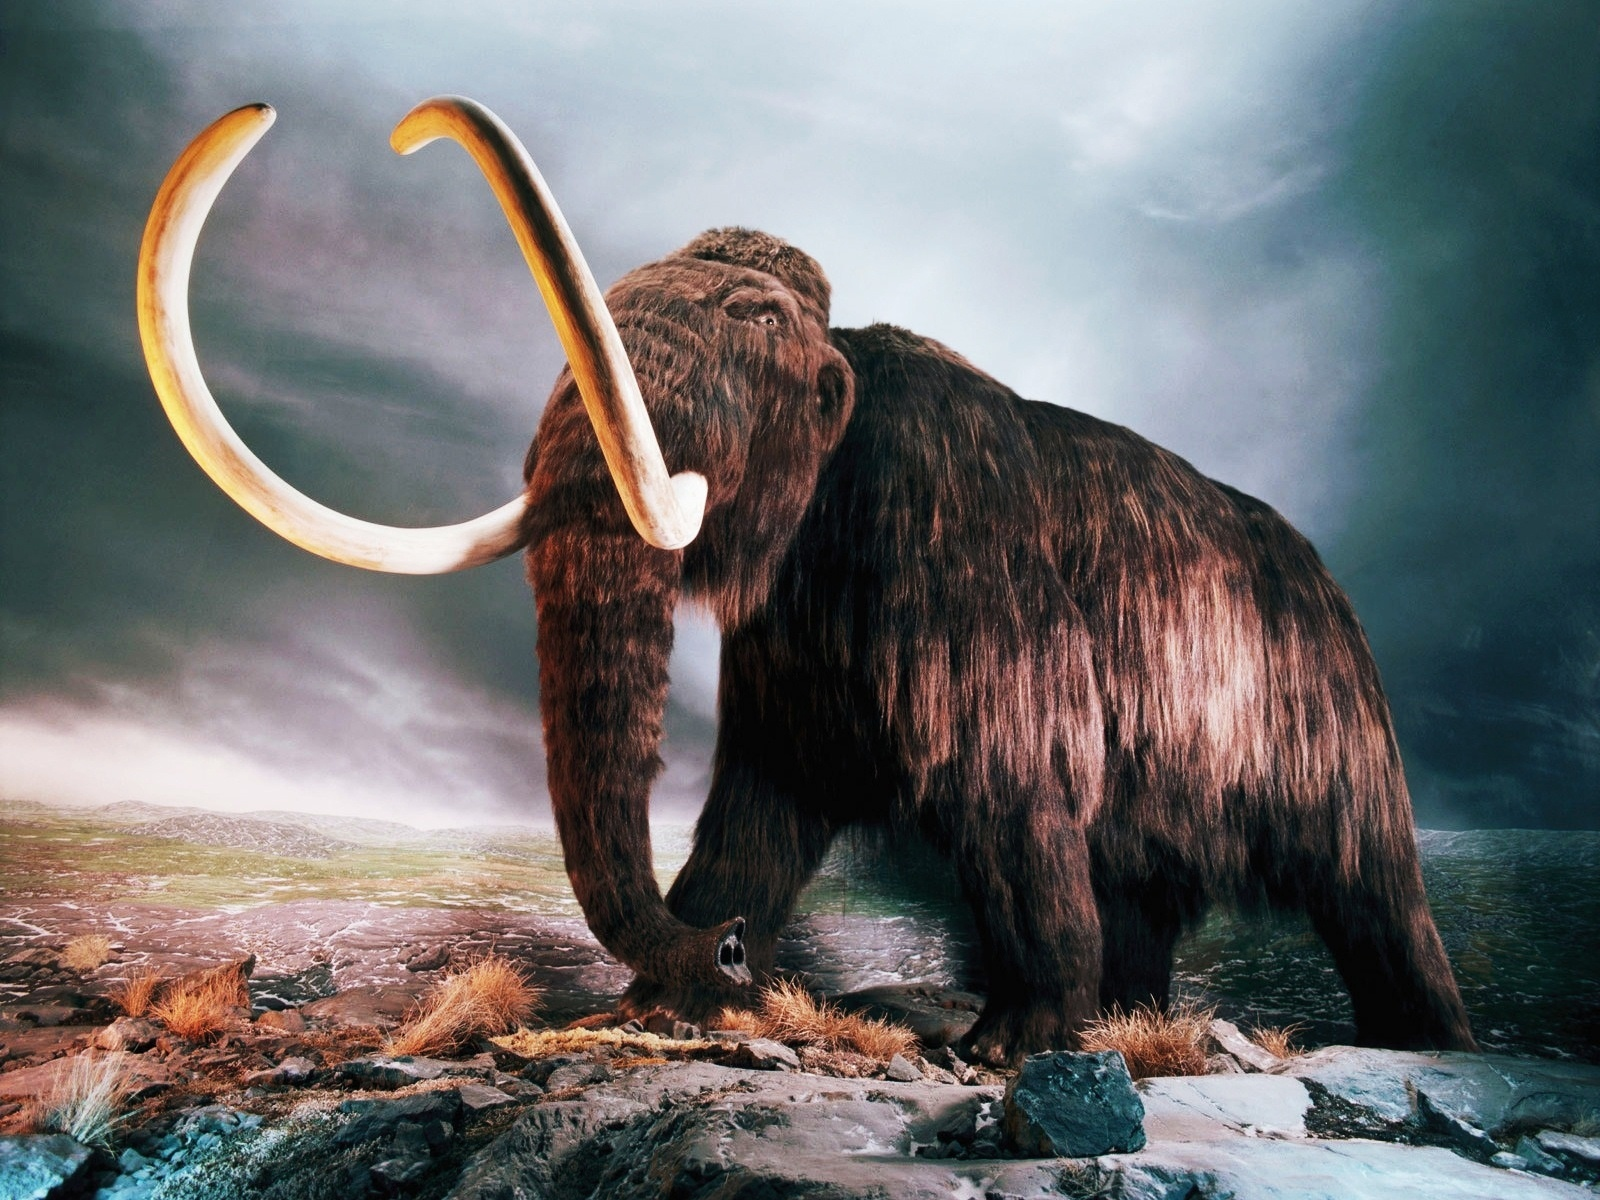 Cloning Woolly Mammoths and Global Warming – What's the Connection?